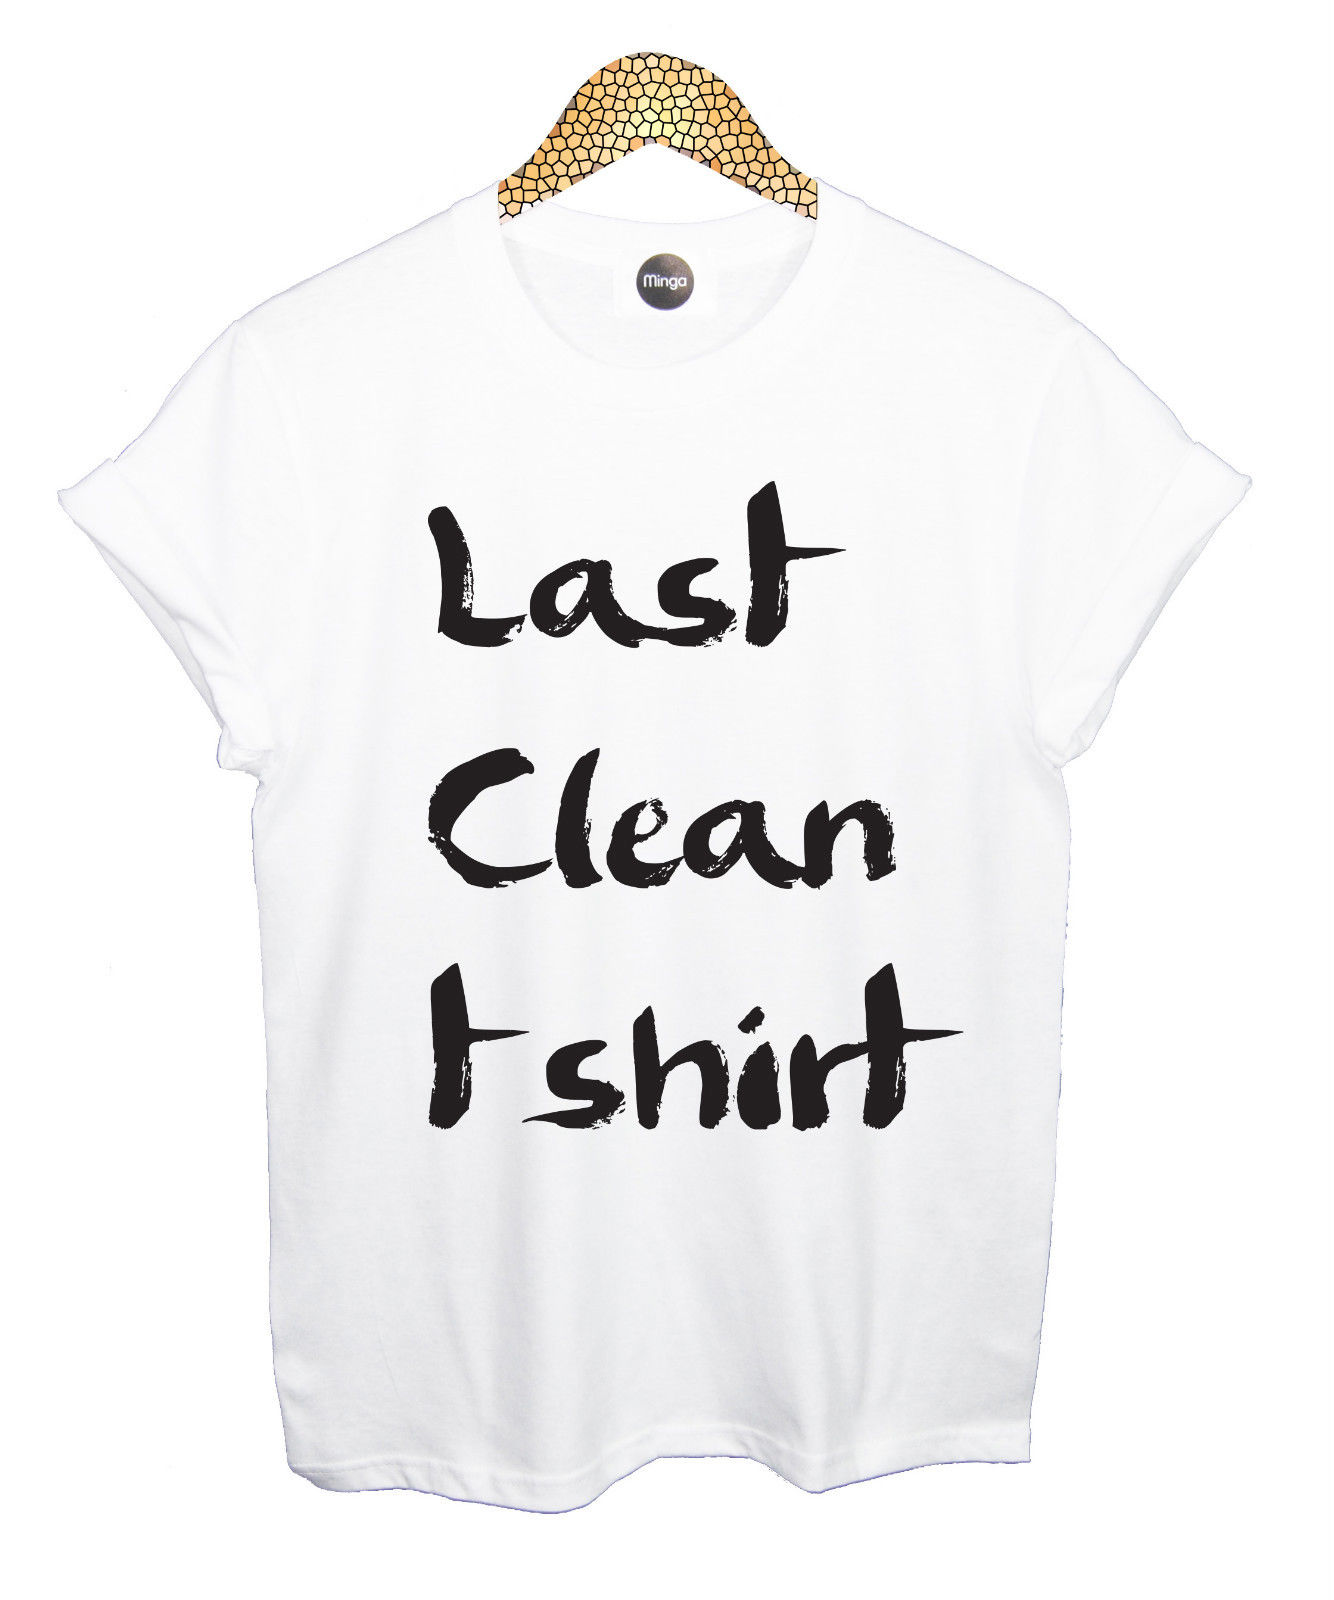 LAST CLEAN T SHIRT TOP TEE TANK VEST CARA TUMBLR BLOG HIPSTER FASHION RETRO VTG Women Slim Fit Sexy Cotton T-Shirts image